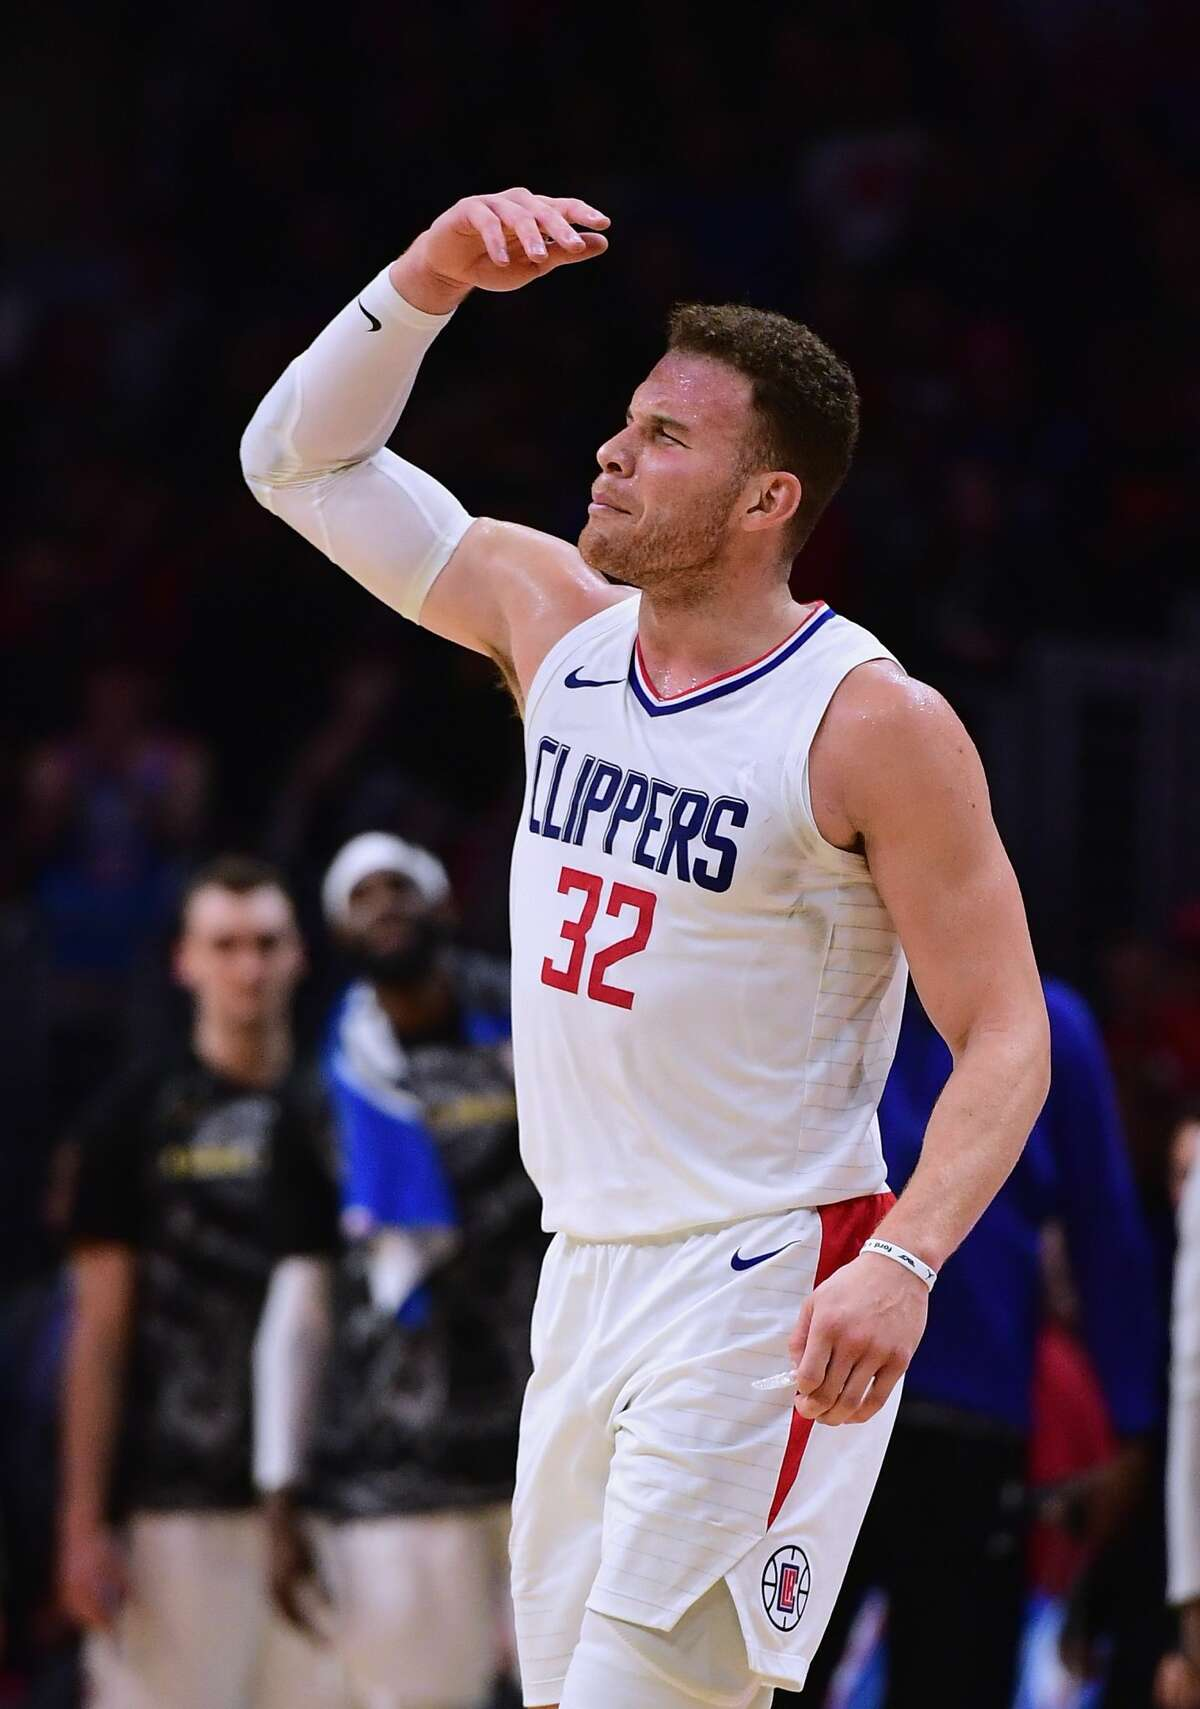 LOS ANGELES, CA - JANUARY 15: Blake Griffin #32 of the LA Clippers celebrates a Houston Rockets foul during a 113-102 Clipper win at Staples Center on January 15, 2018 in Los Angeles, California. (Photo by Harry How/Getty Images)